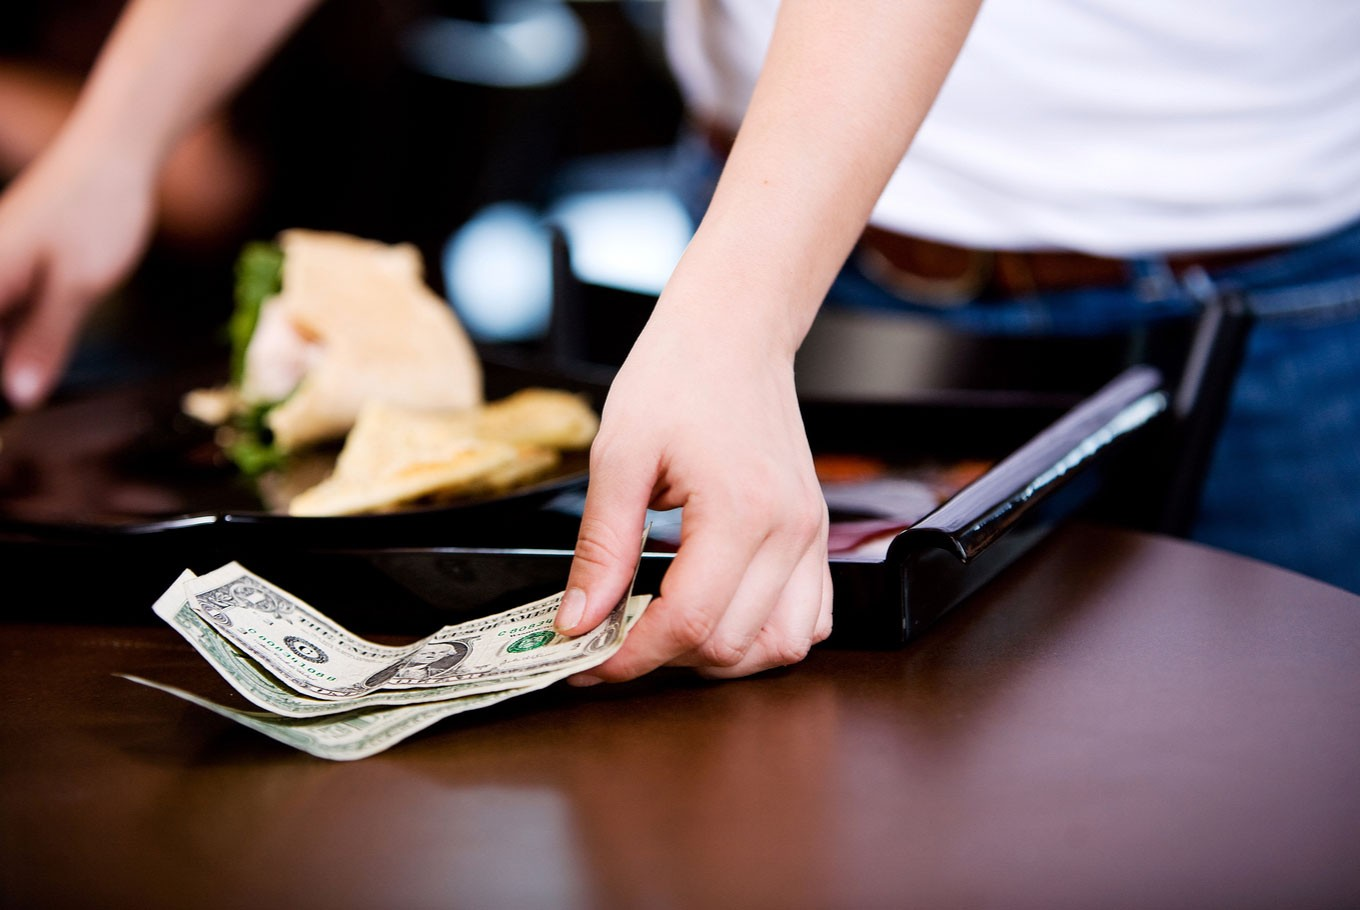 Why Americans tip waiters: A closer look at the US tipping norm